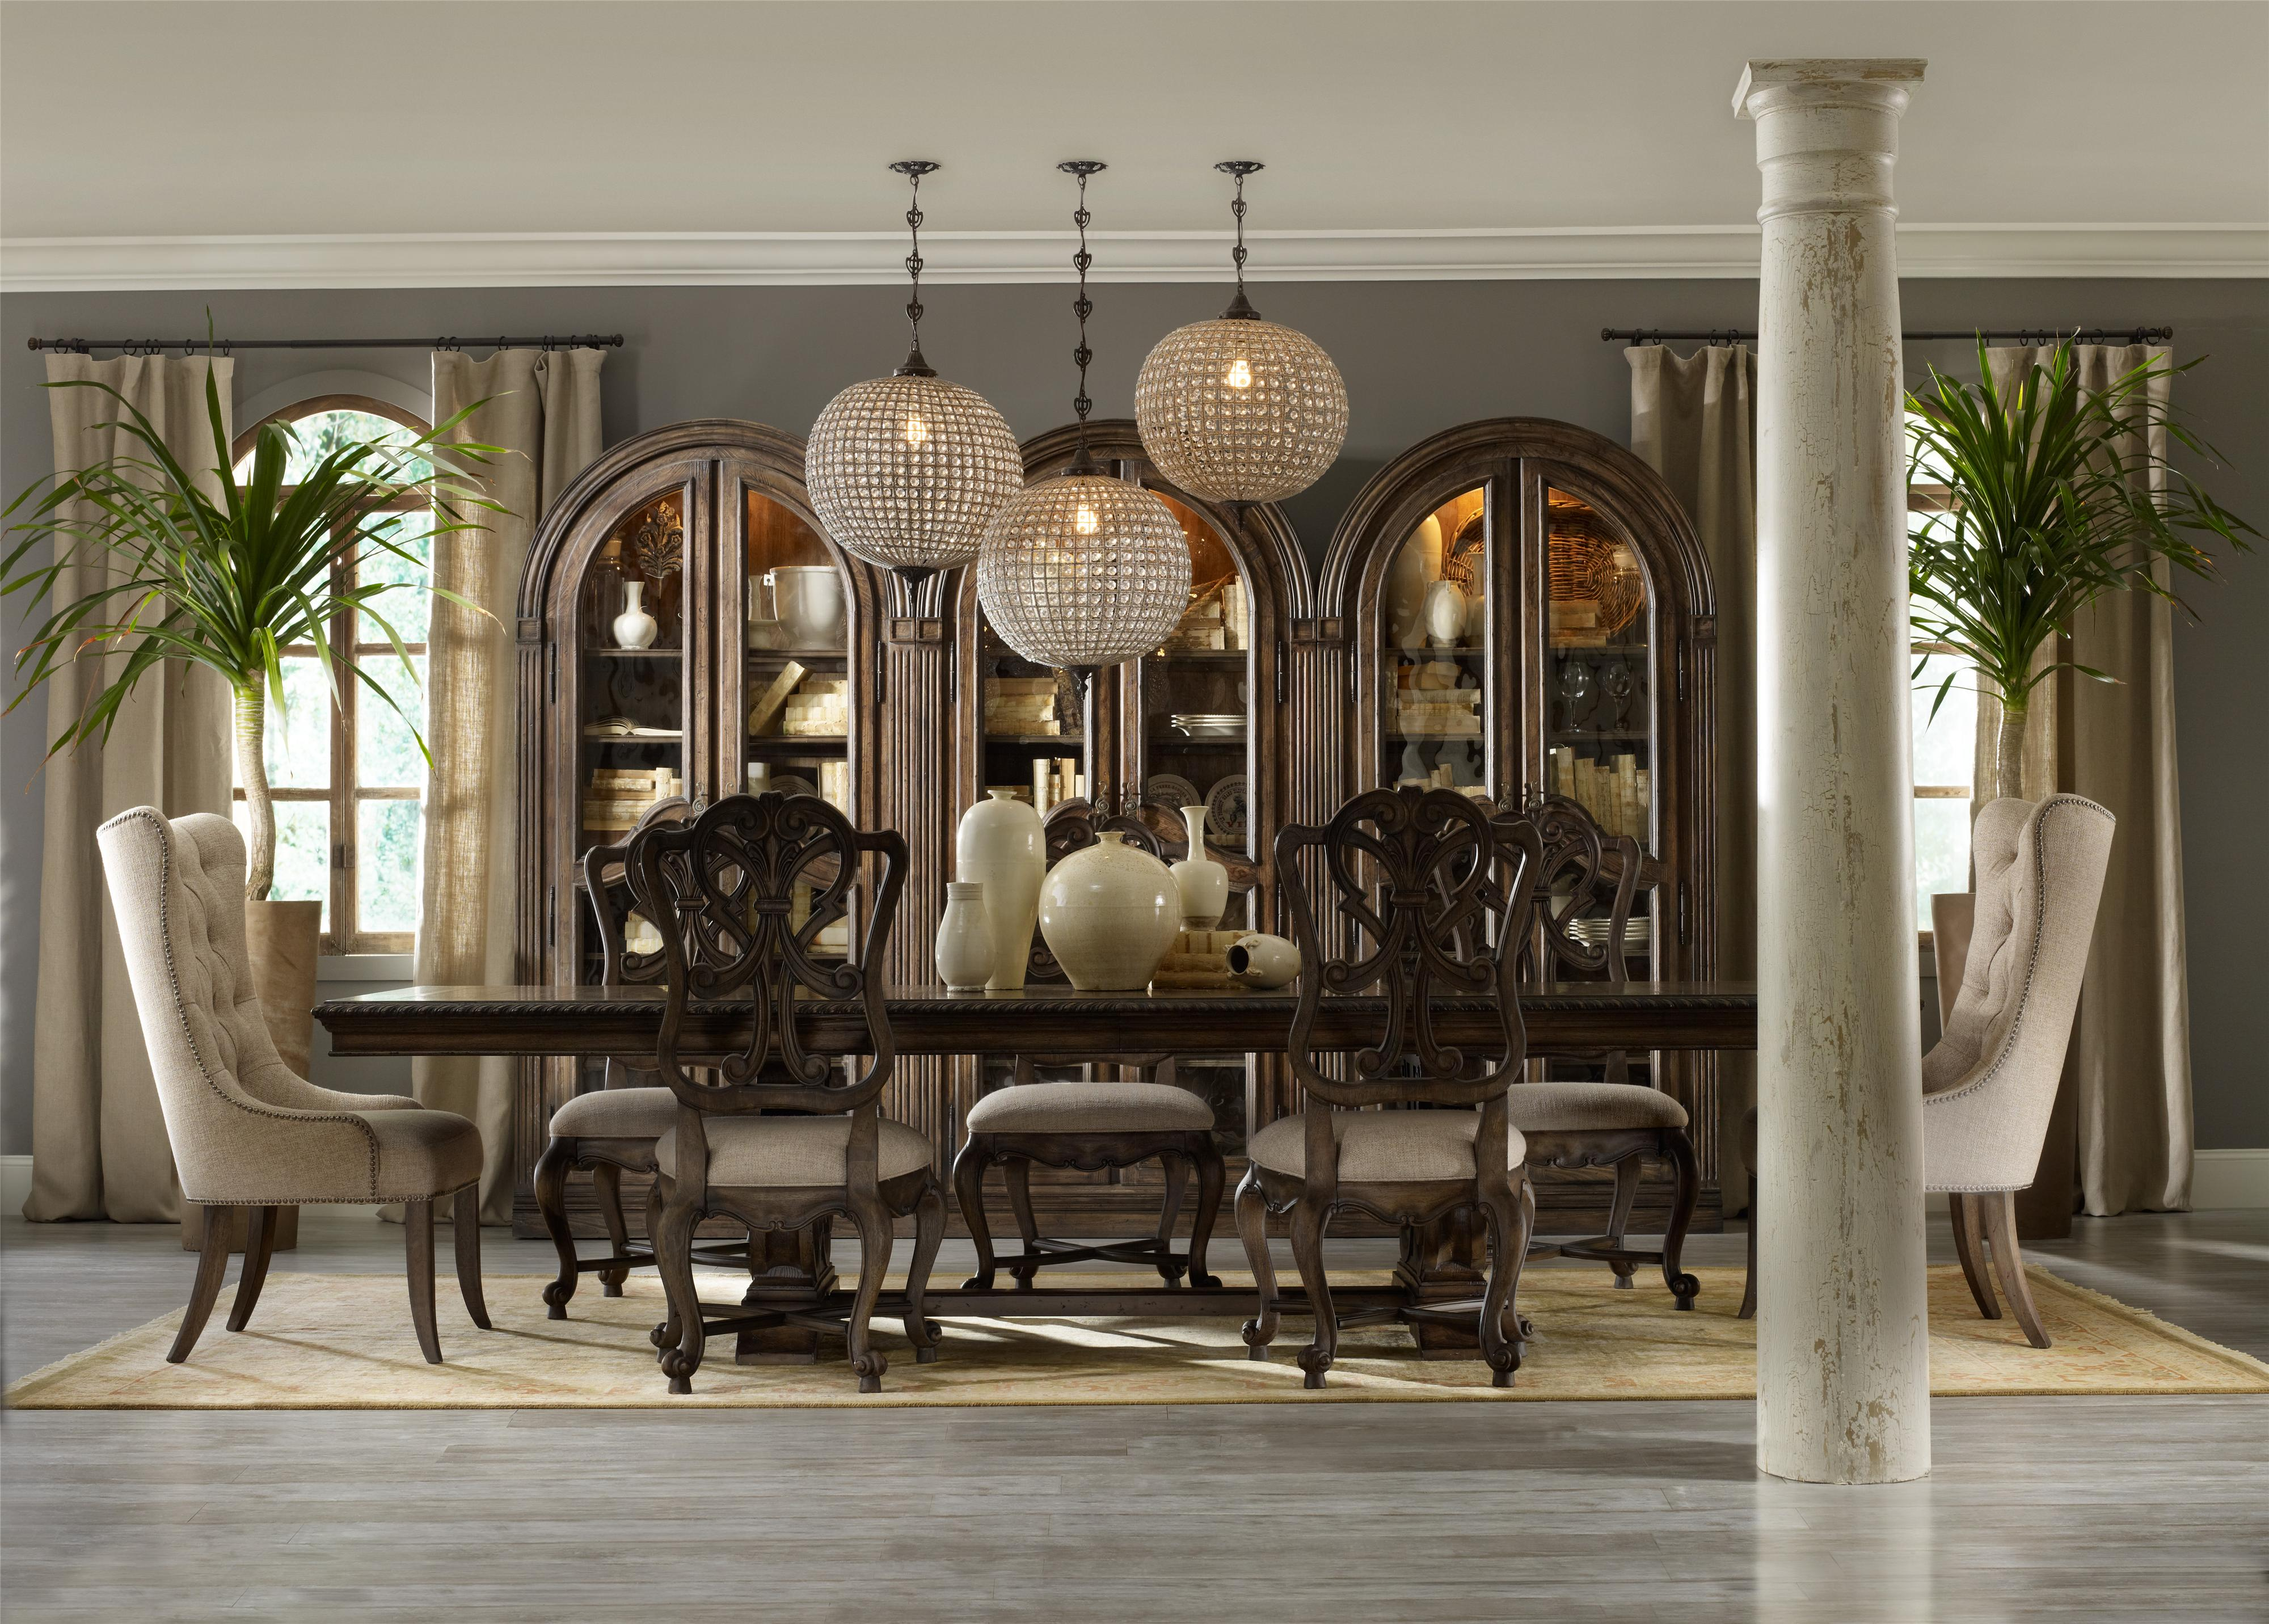 Rhapsody Rectangular Dining Group w/ 2 Tufted Chair by Hooker Furniture at Baer's Furniture